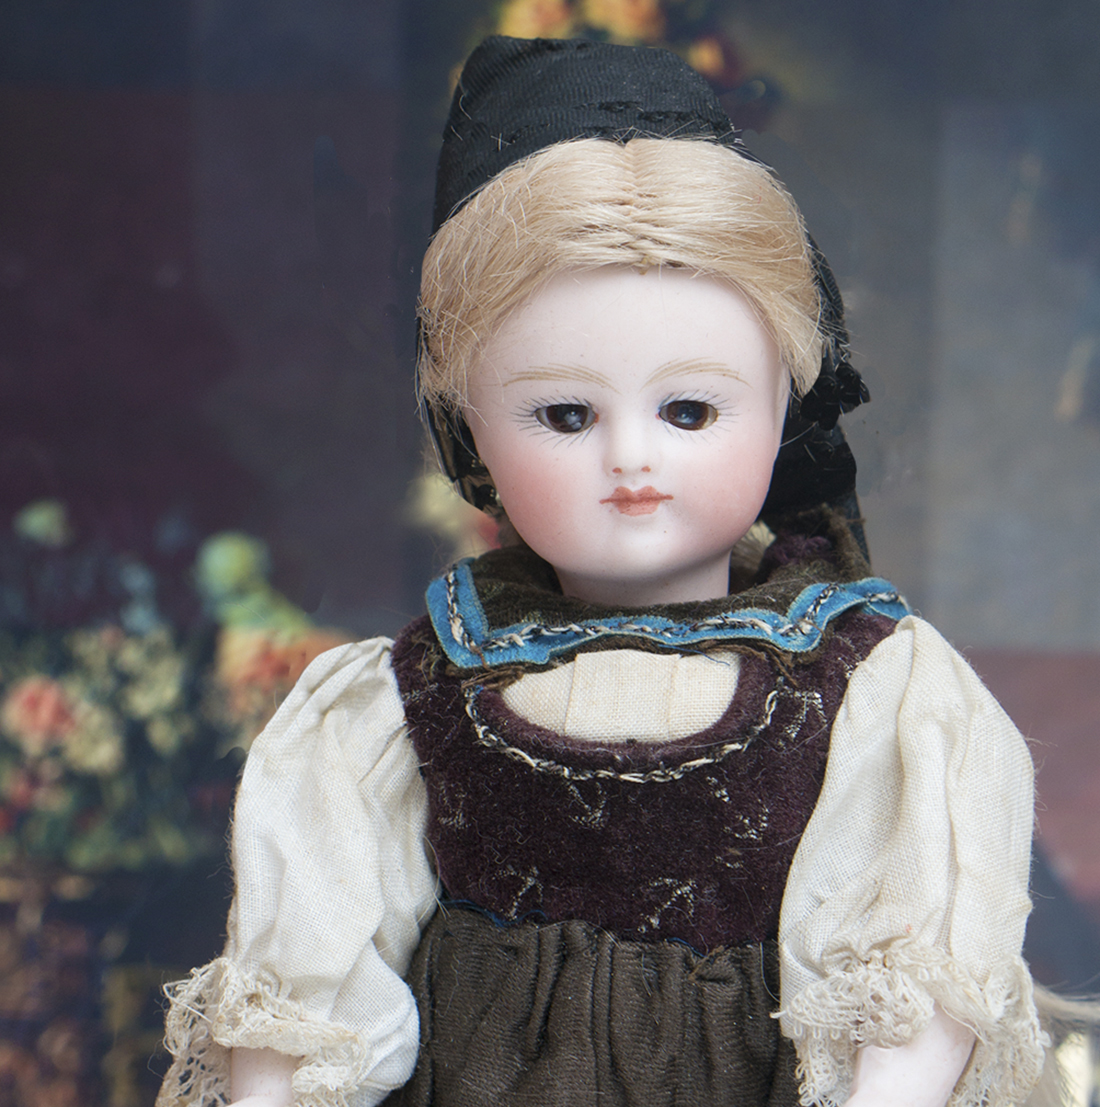 Mignonette doll by Kestner